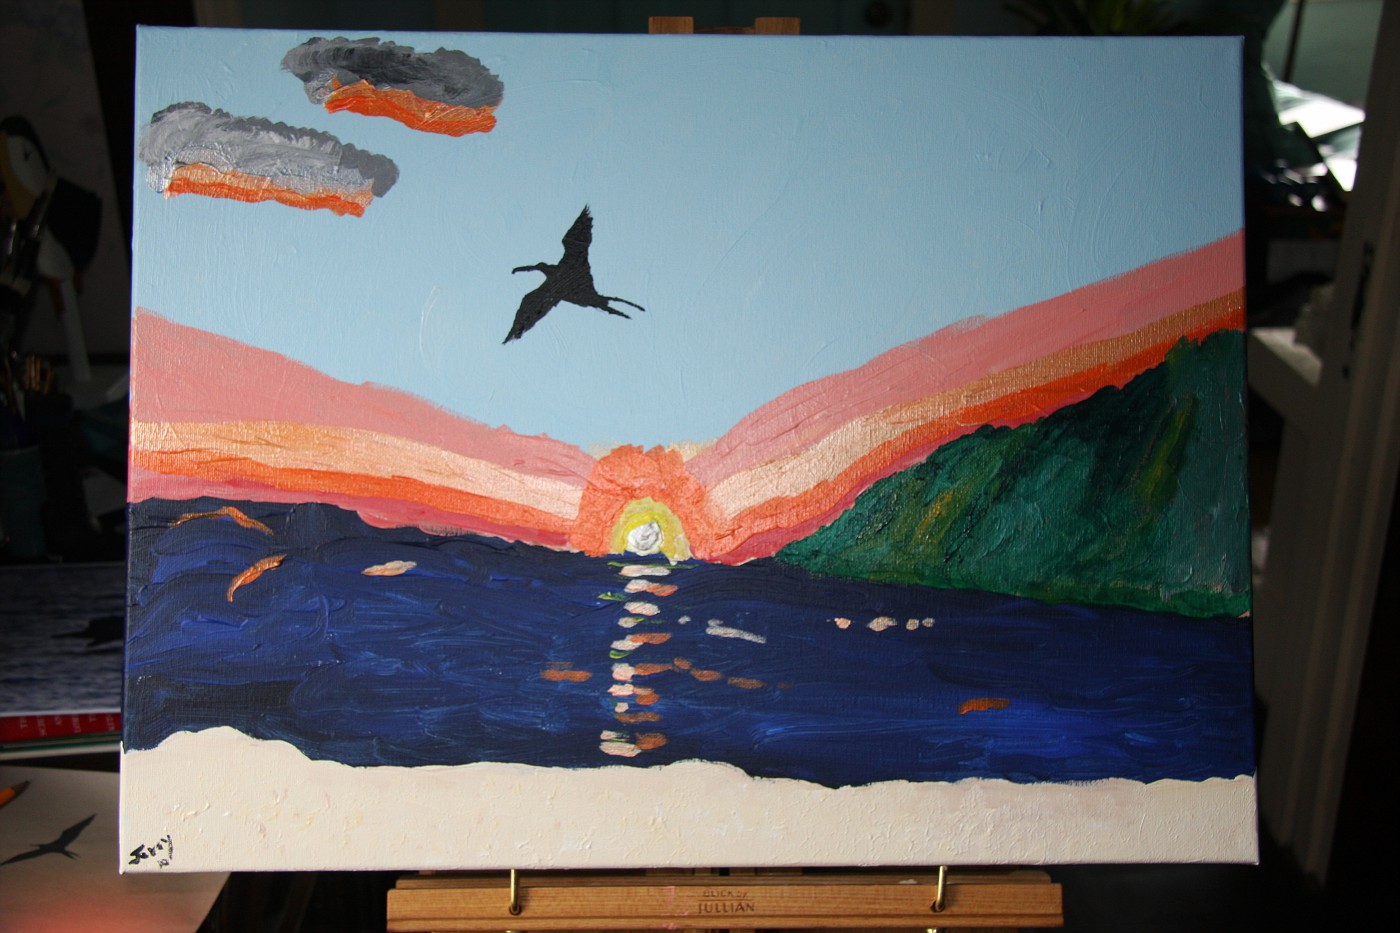 Frigate bird at sunset before lesson